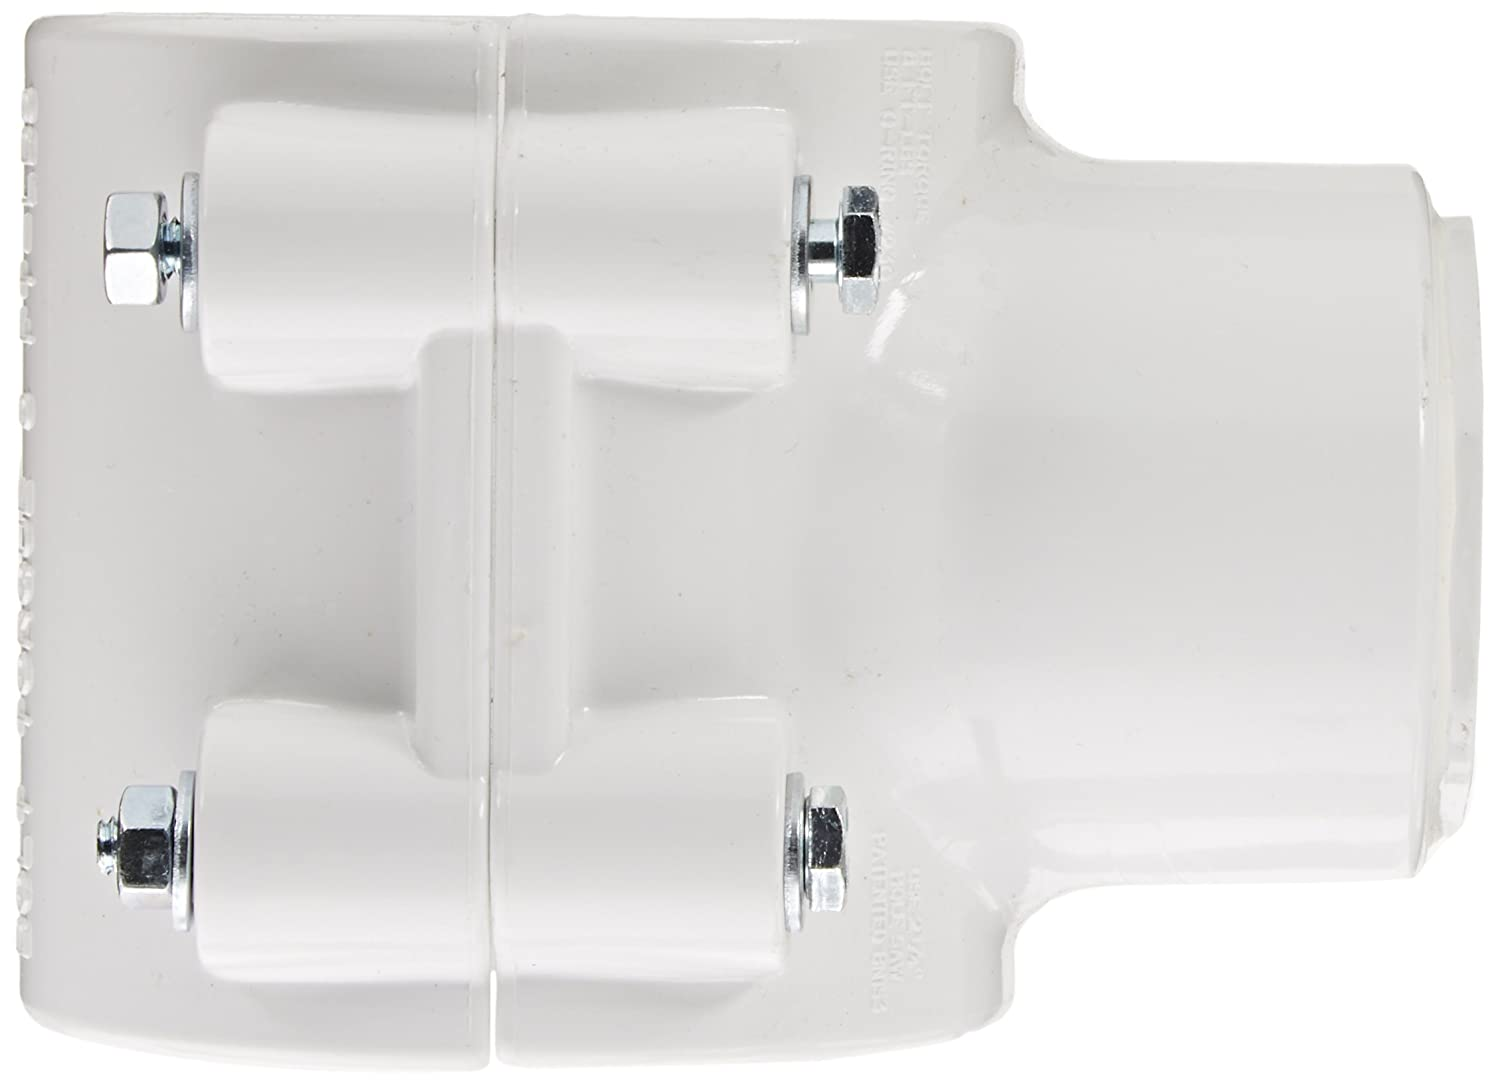 Zink Bolt Schedule 40 2 IPS OD x 1//2 Socket Spears 466 Series PVC Clamp-On Saddle with Buna O-Ring White